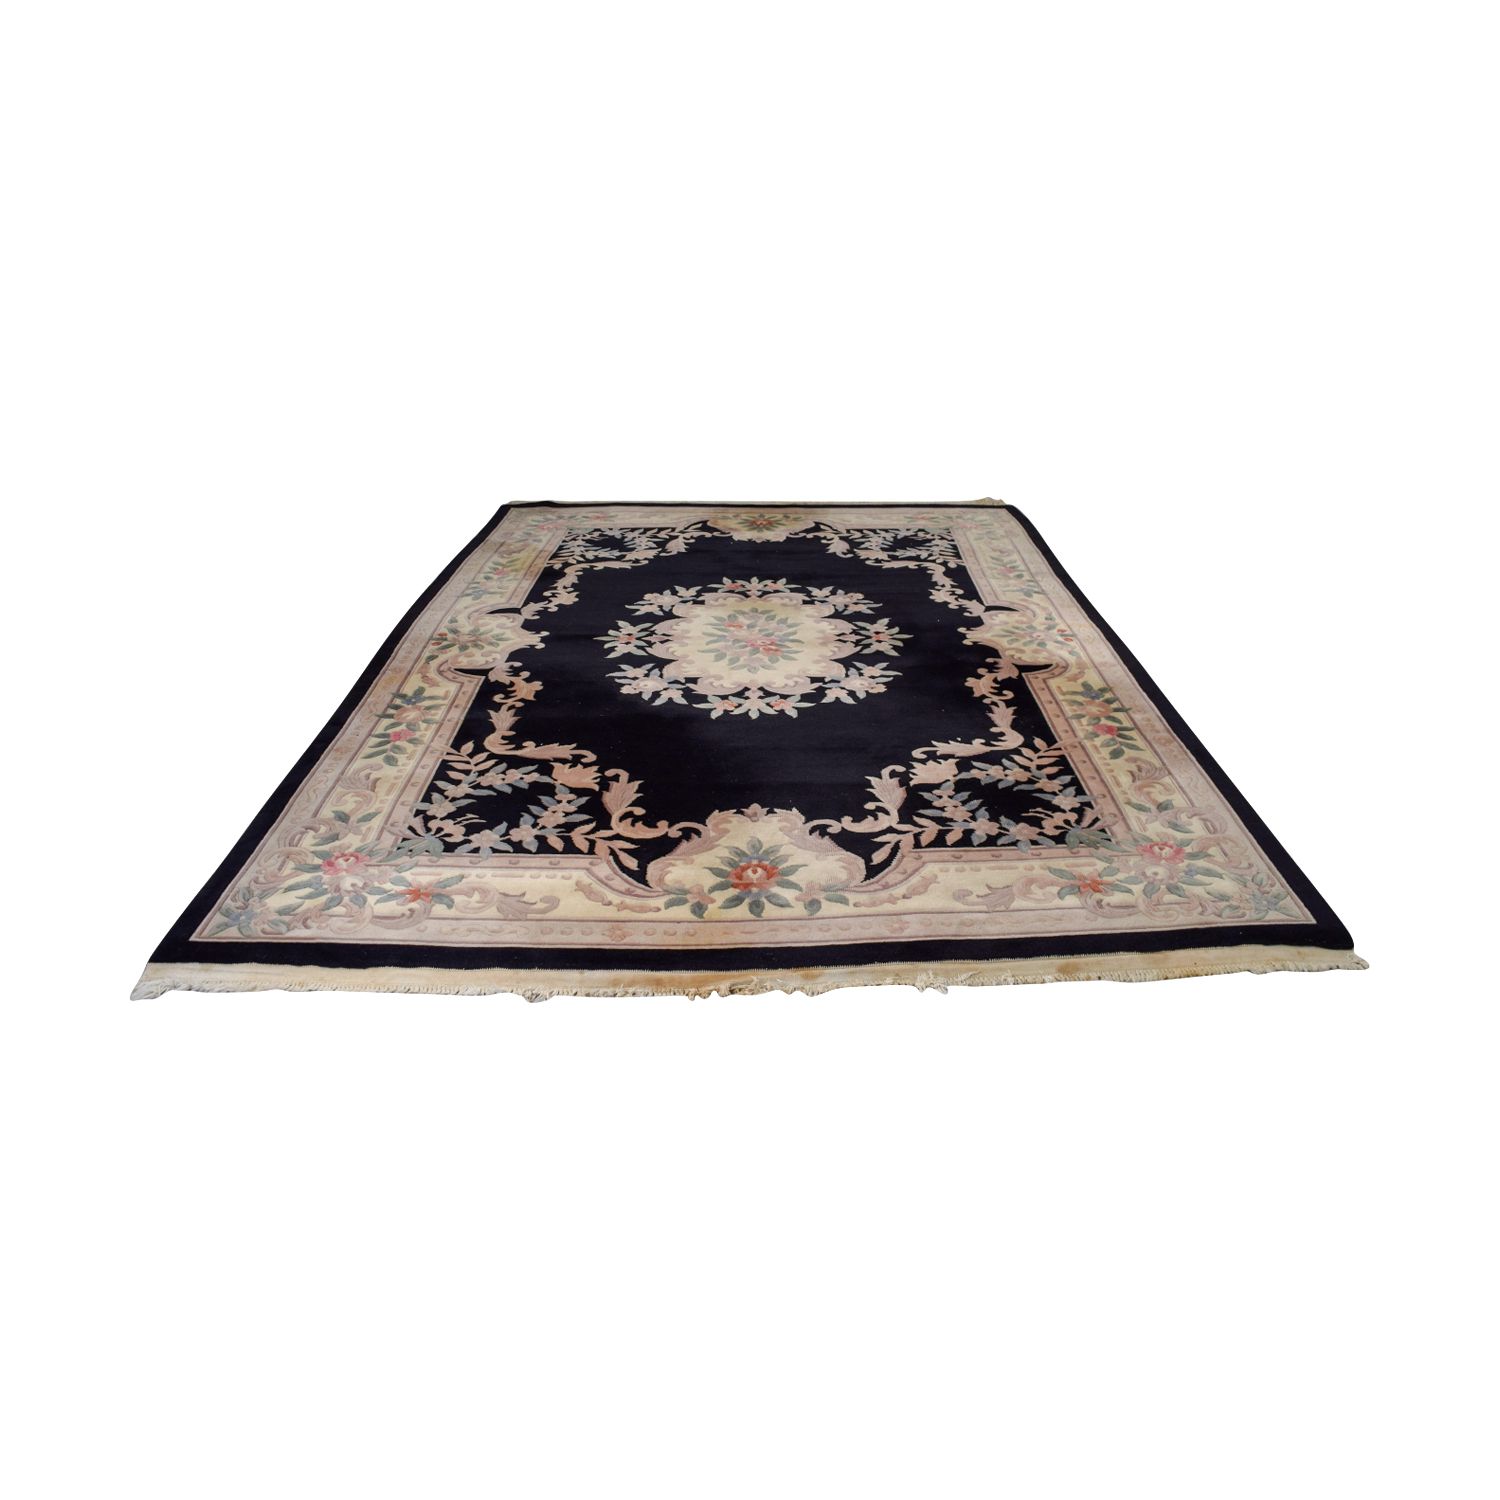 Black Oriental Multi-Colored Floral Rug / Decor